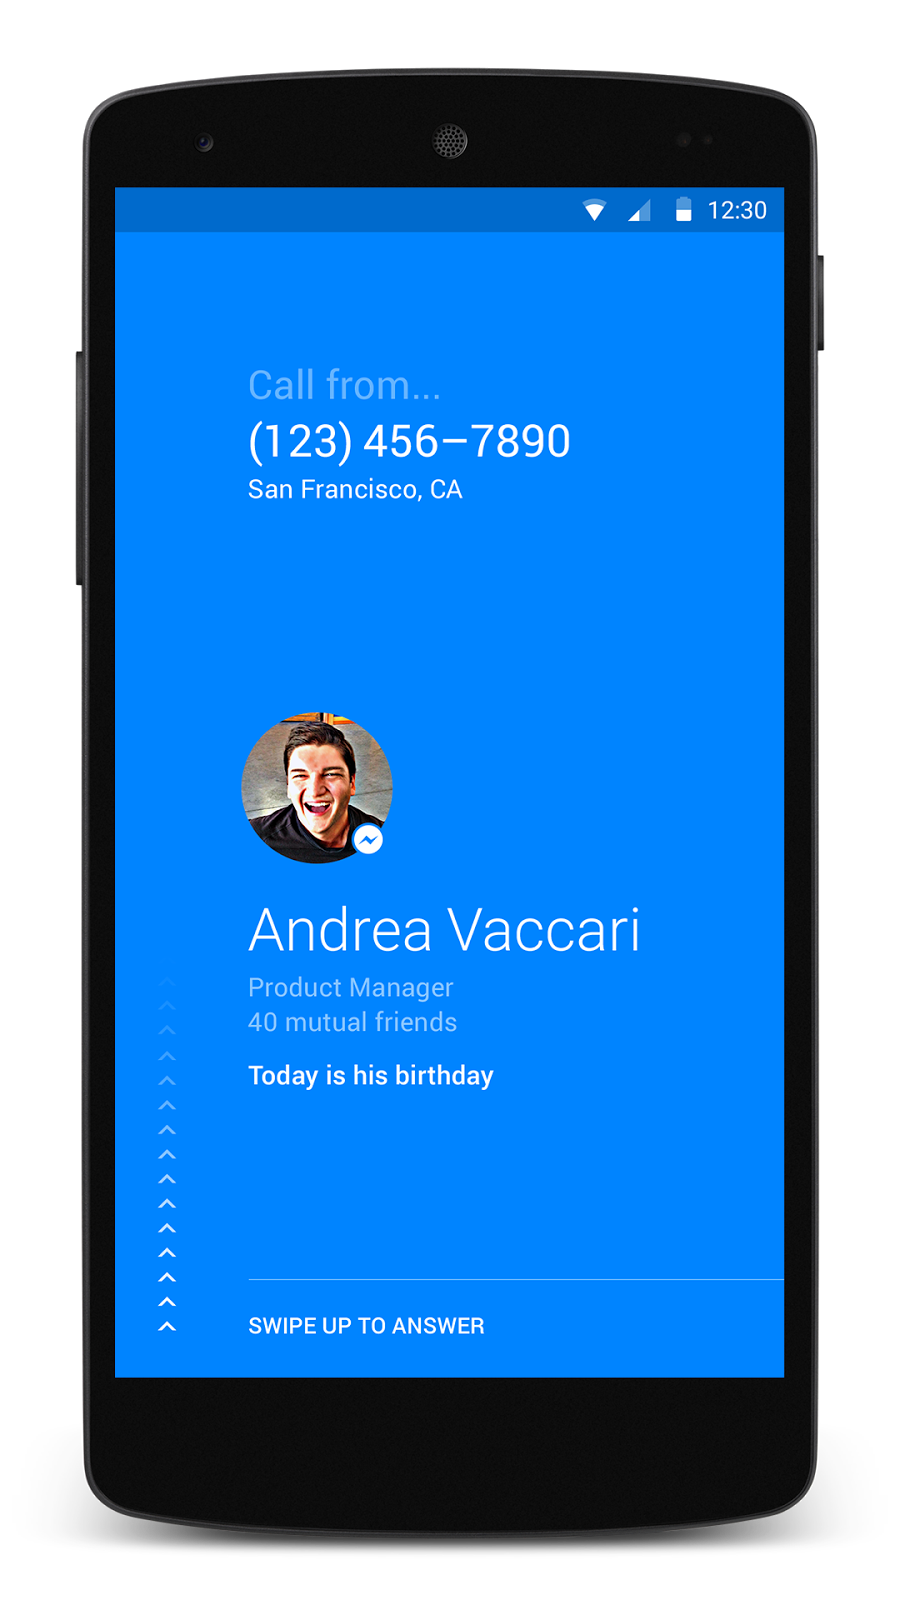 Facebook Launches Hello App with Free Calling and Unique User Search Feature 1